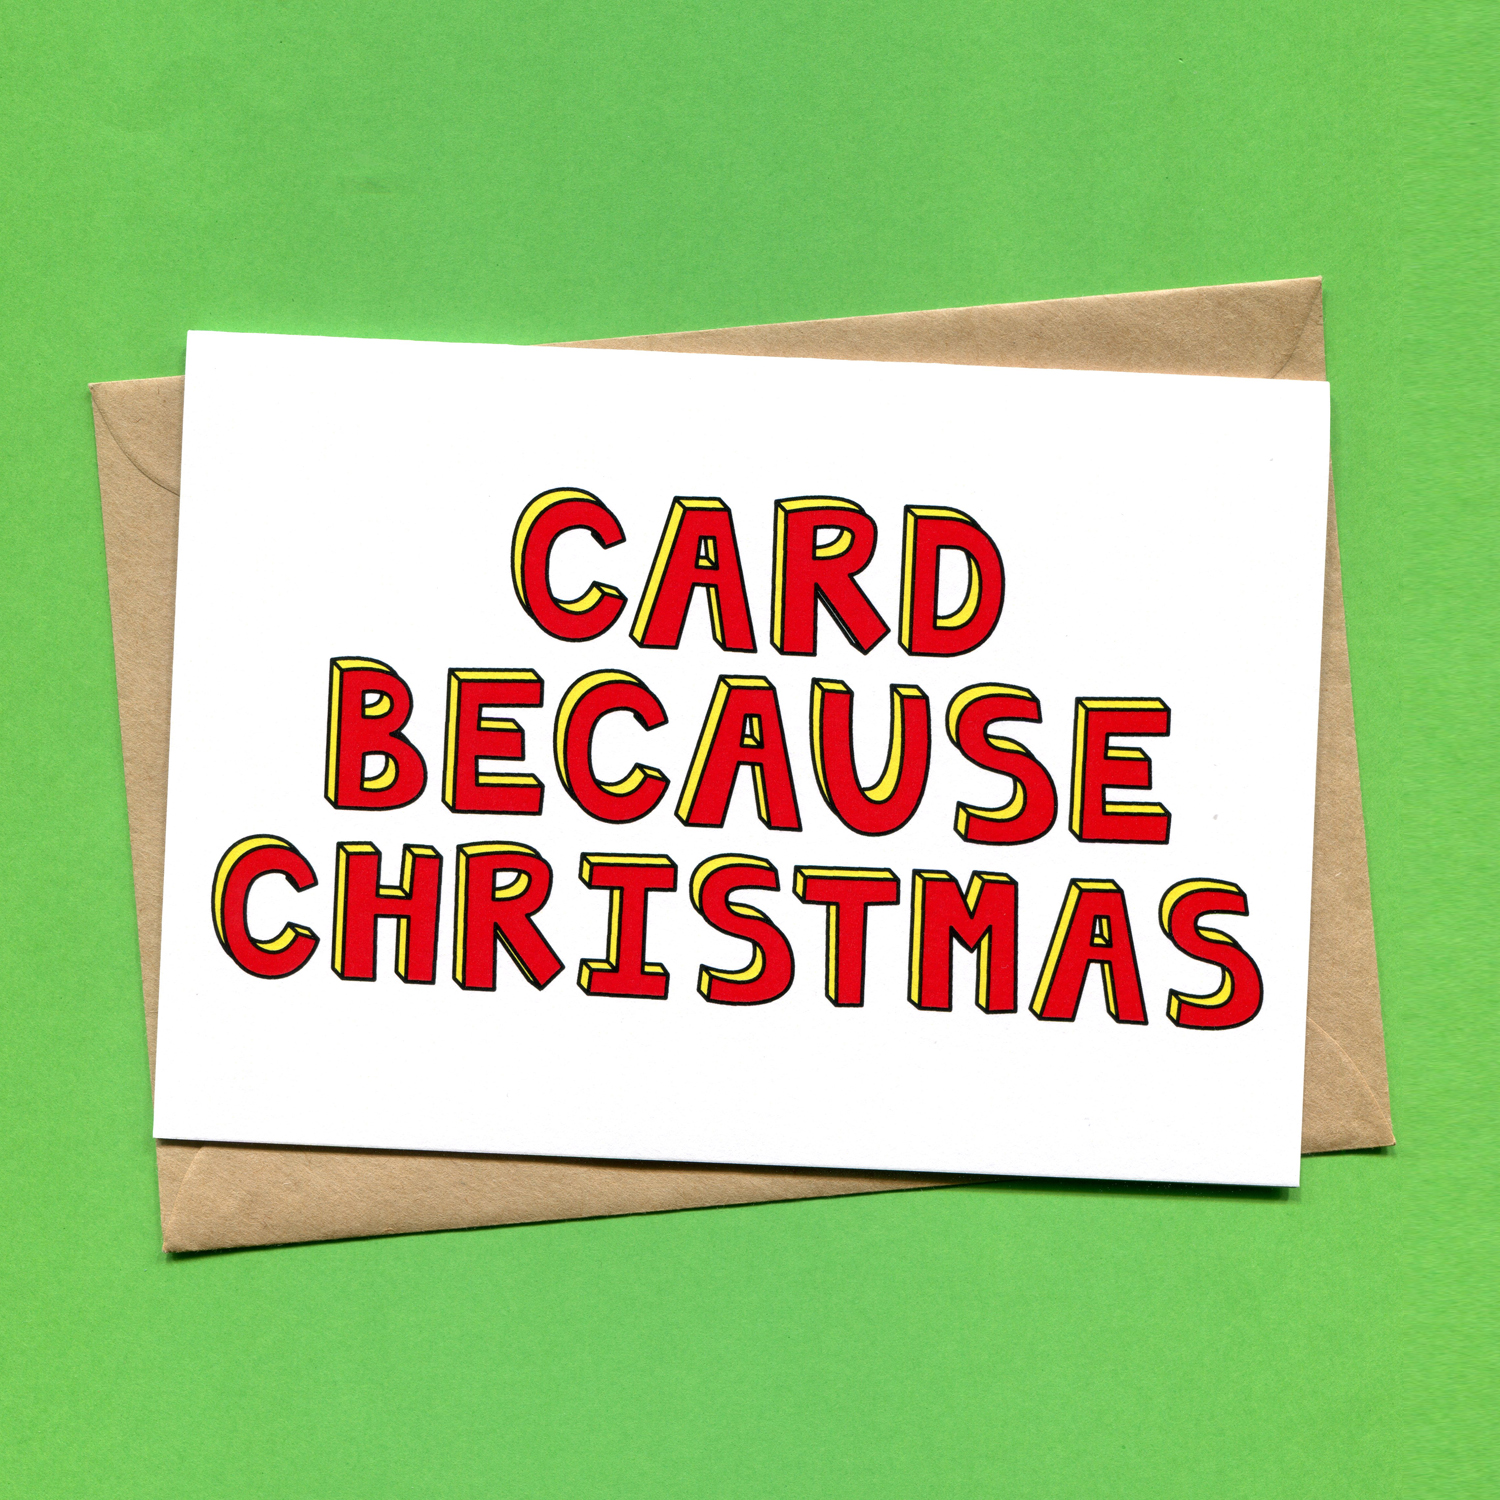 Catalogue_Things by Bean Card Because Christmas Christmas Card.jpg